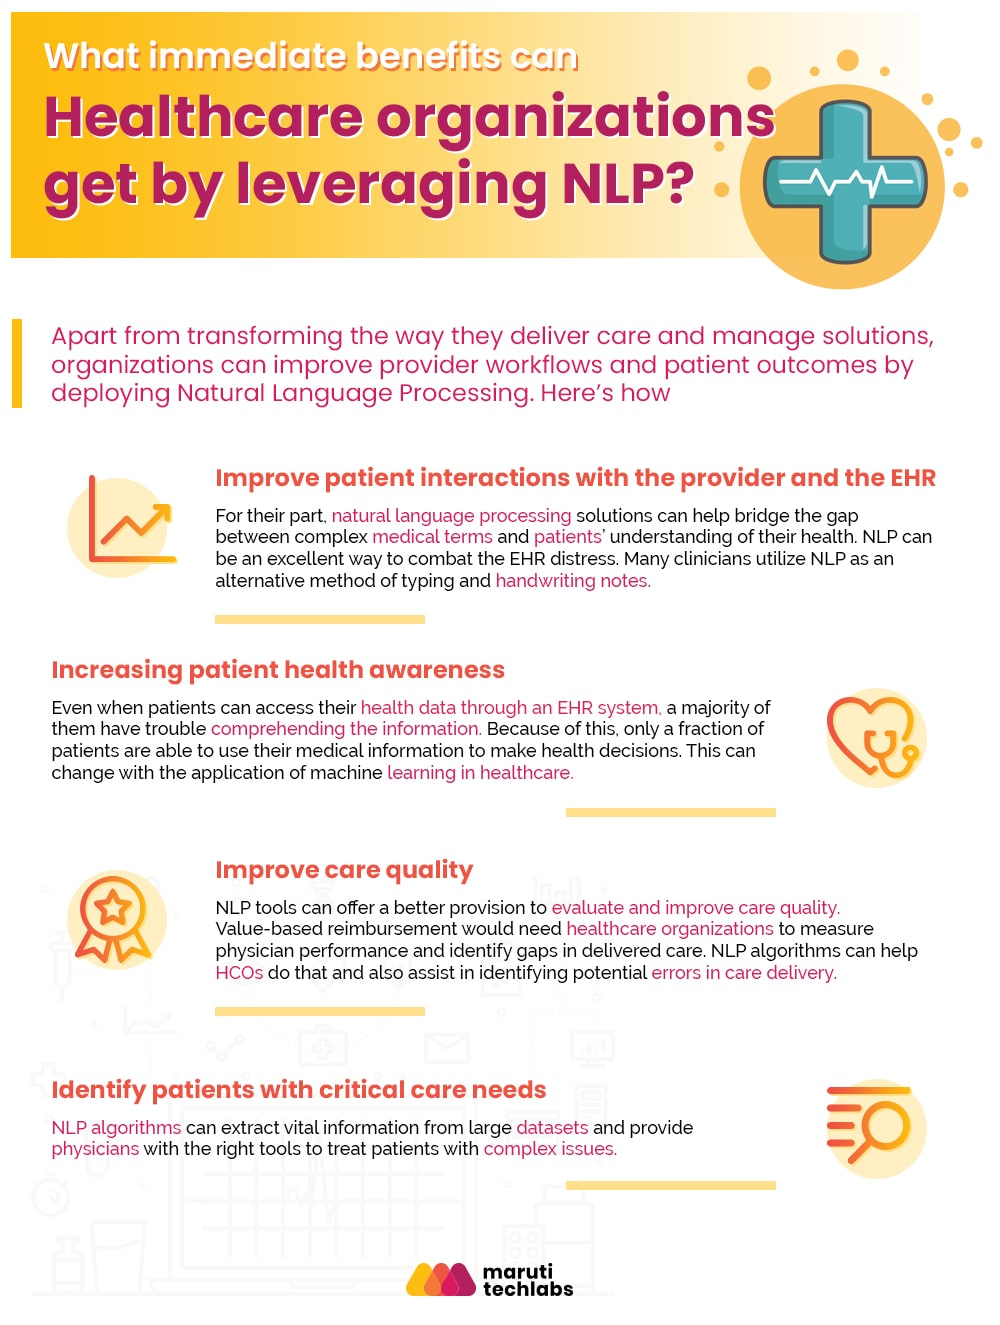 How Can Healthcare Organizations Leverage NLP?